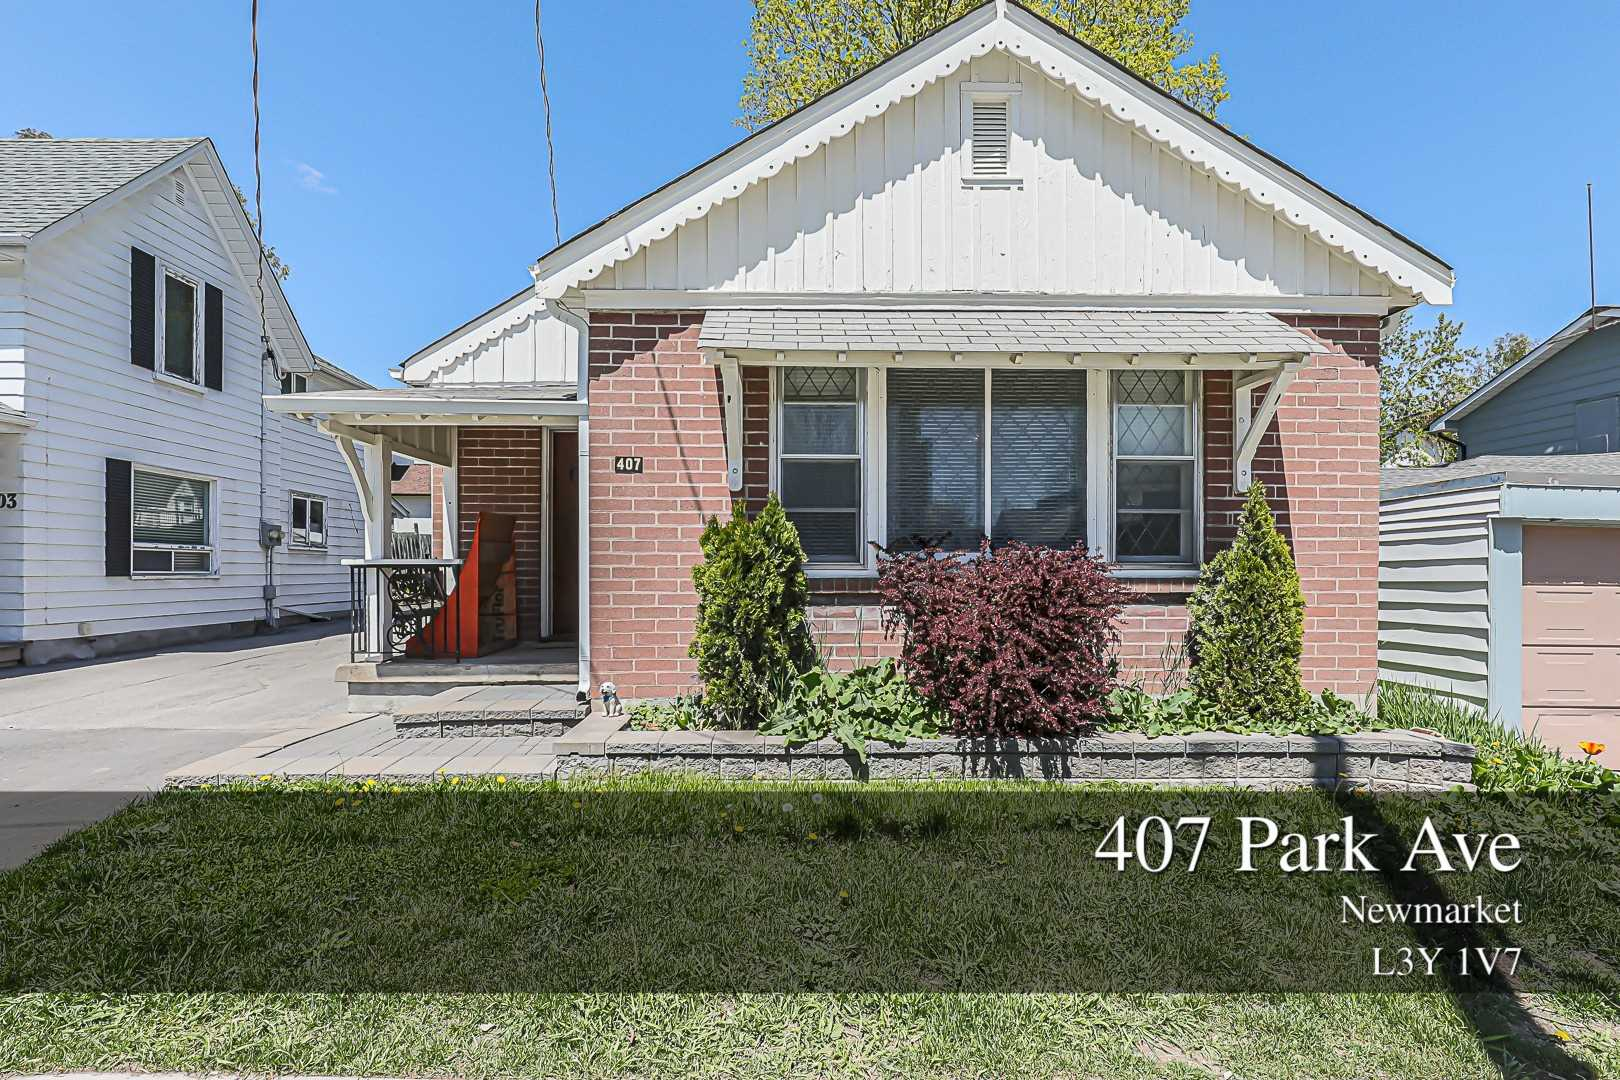 Detached house For Sale In Newmarket - 407 Park Ave, Newmarket, Ontario, Canada L3Y1V7 , 2 Bedrooms Bedrooms, ,2 BathroomsBathrooms,Detached,For Sale,Park